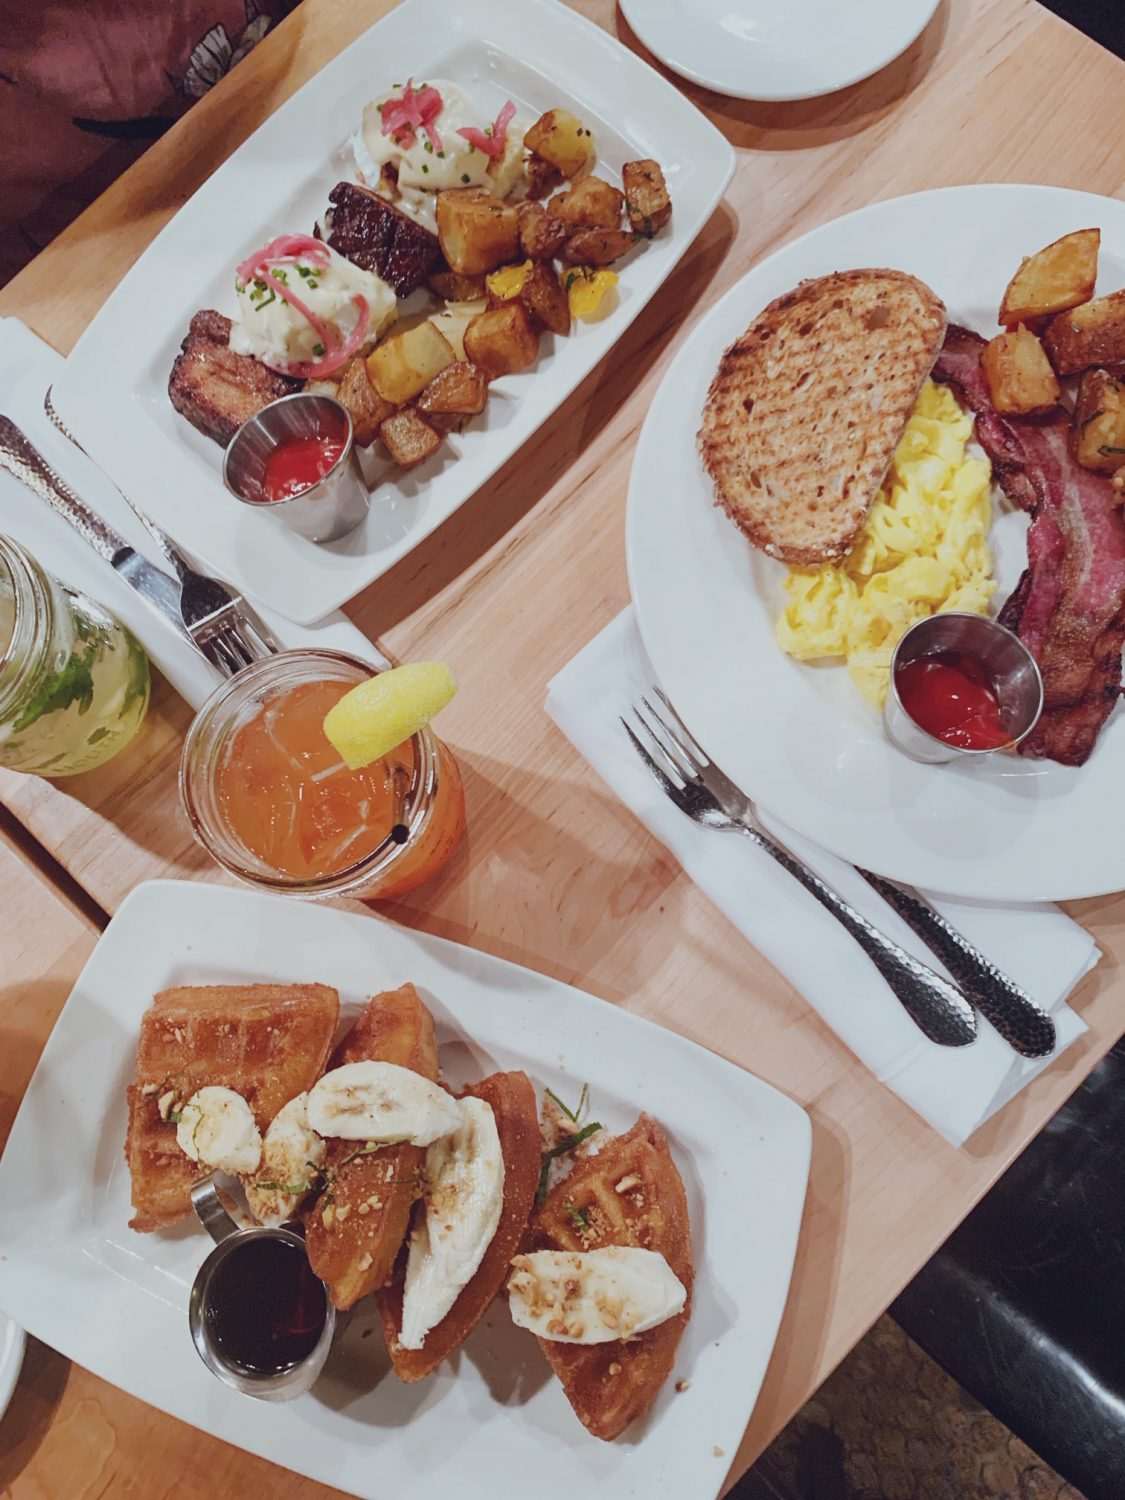 Brunch at White Dog Cafe in University City, Philadelphia